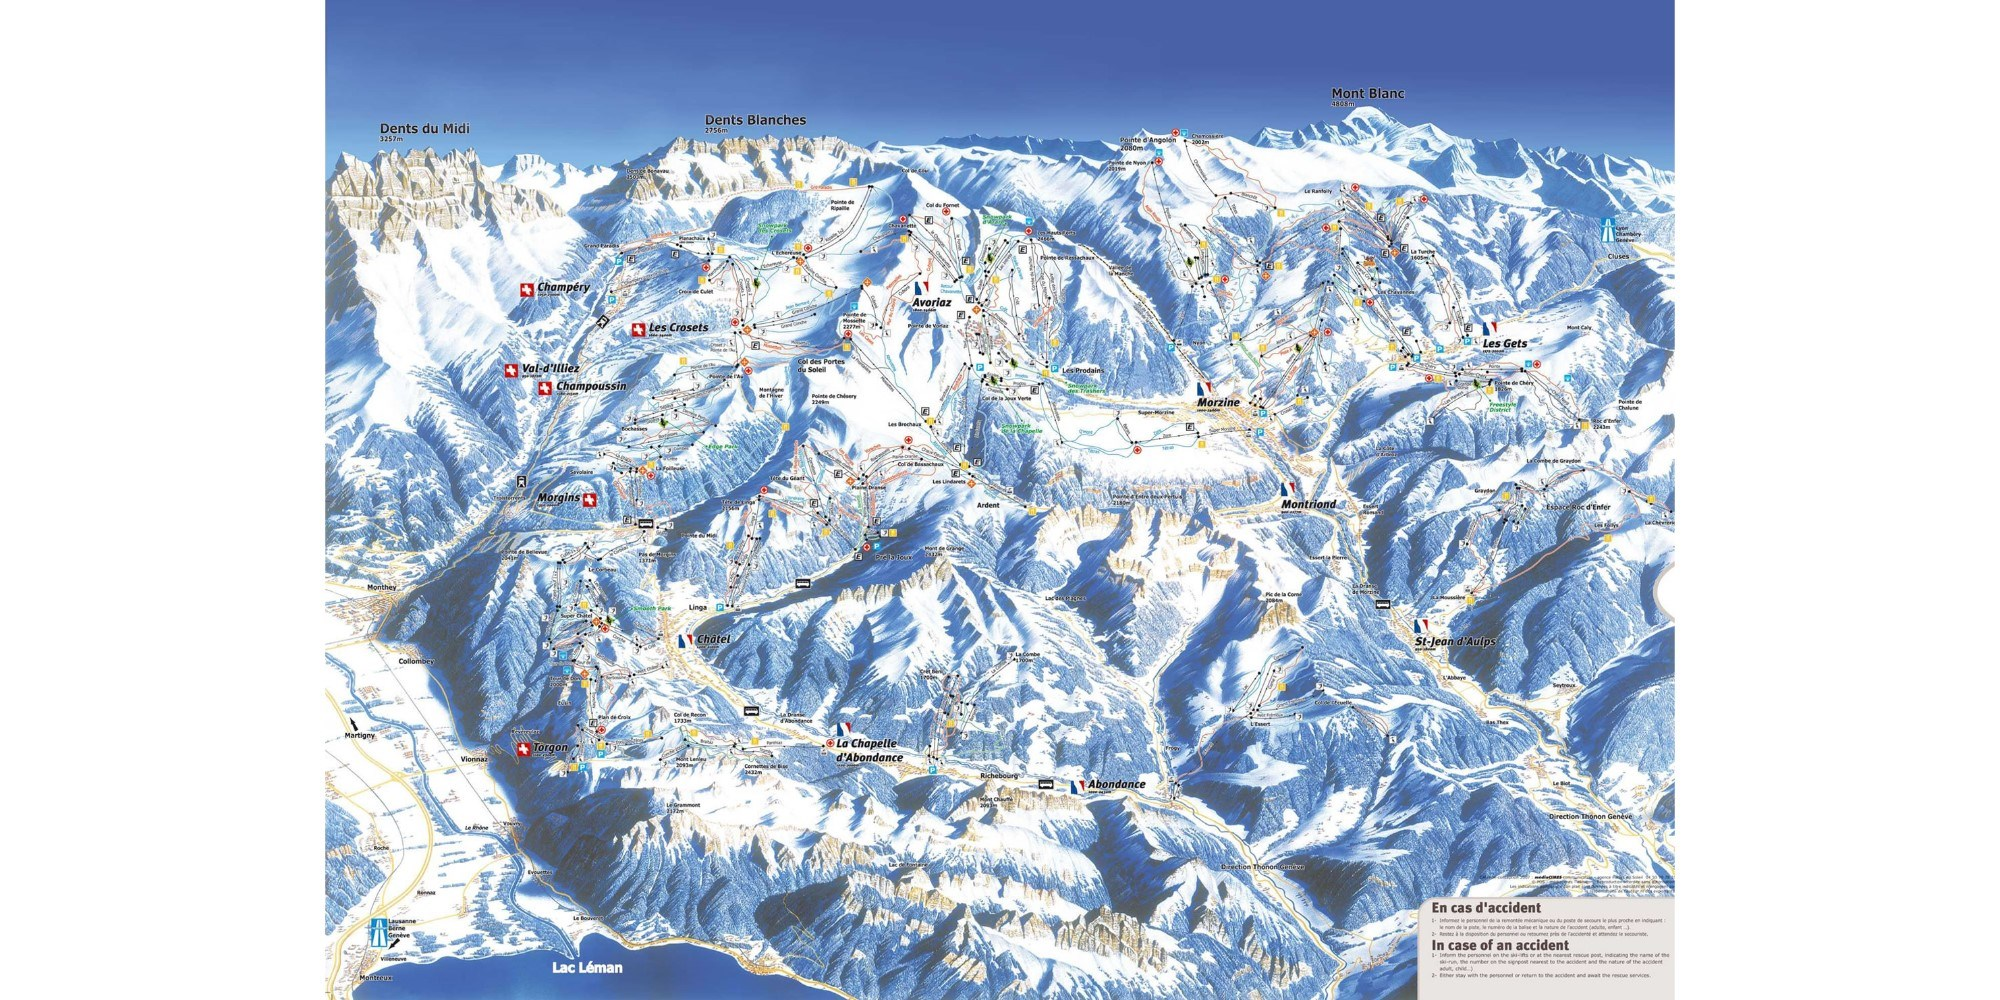 Piste map for Avoriaz